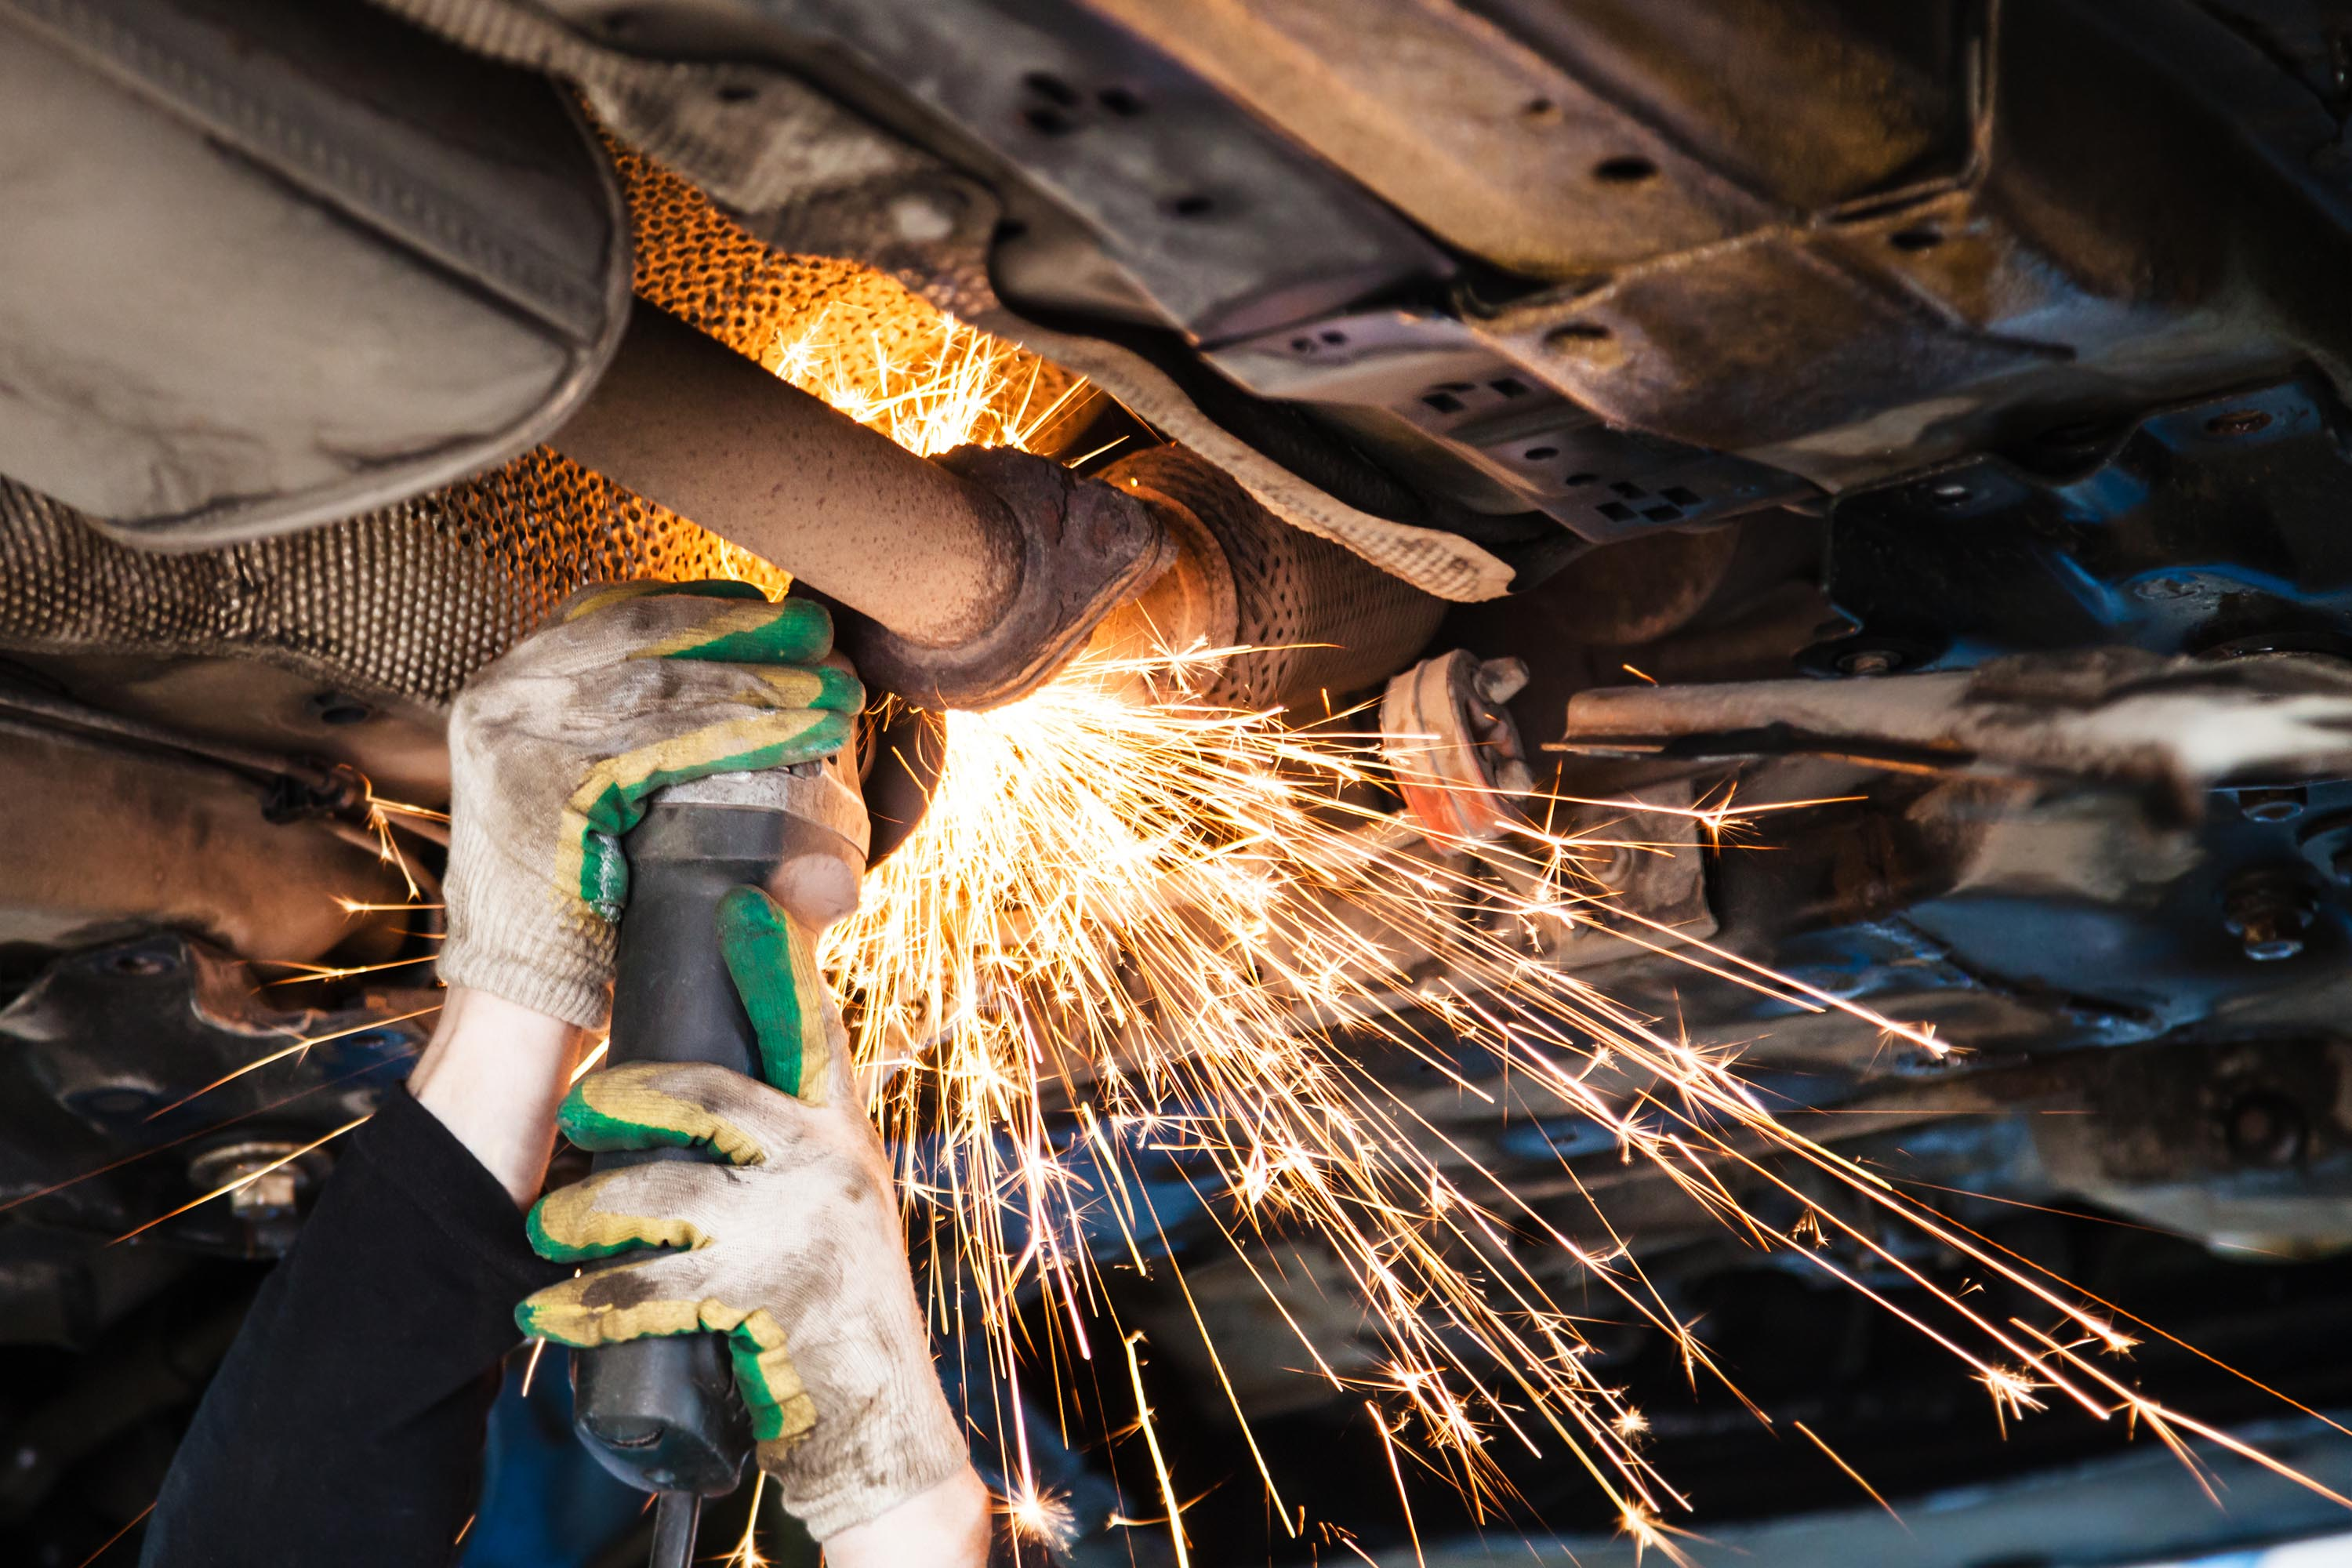 An image of someone using an angle grinder on the underside of a car.